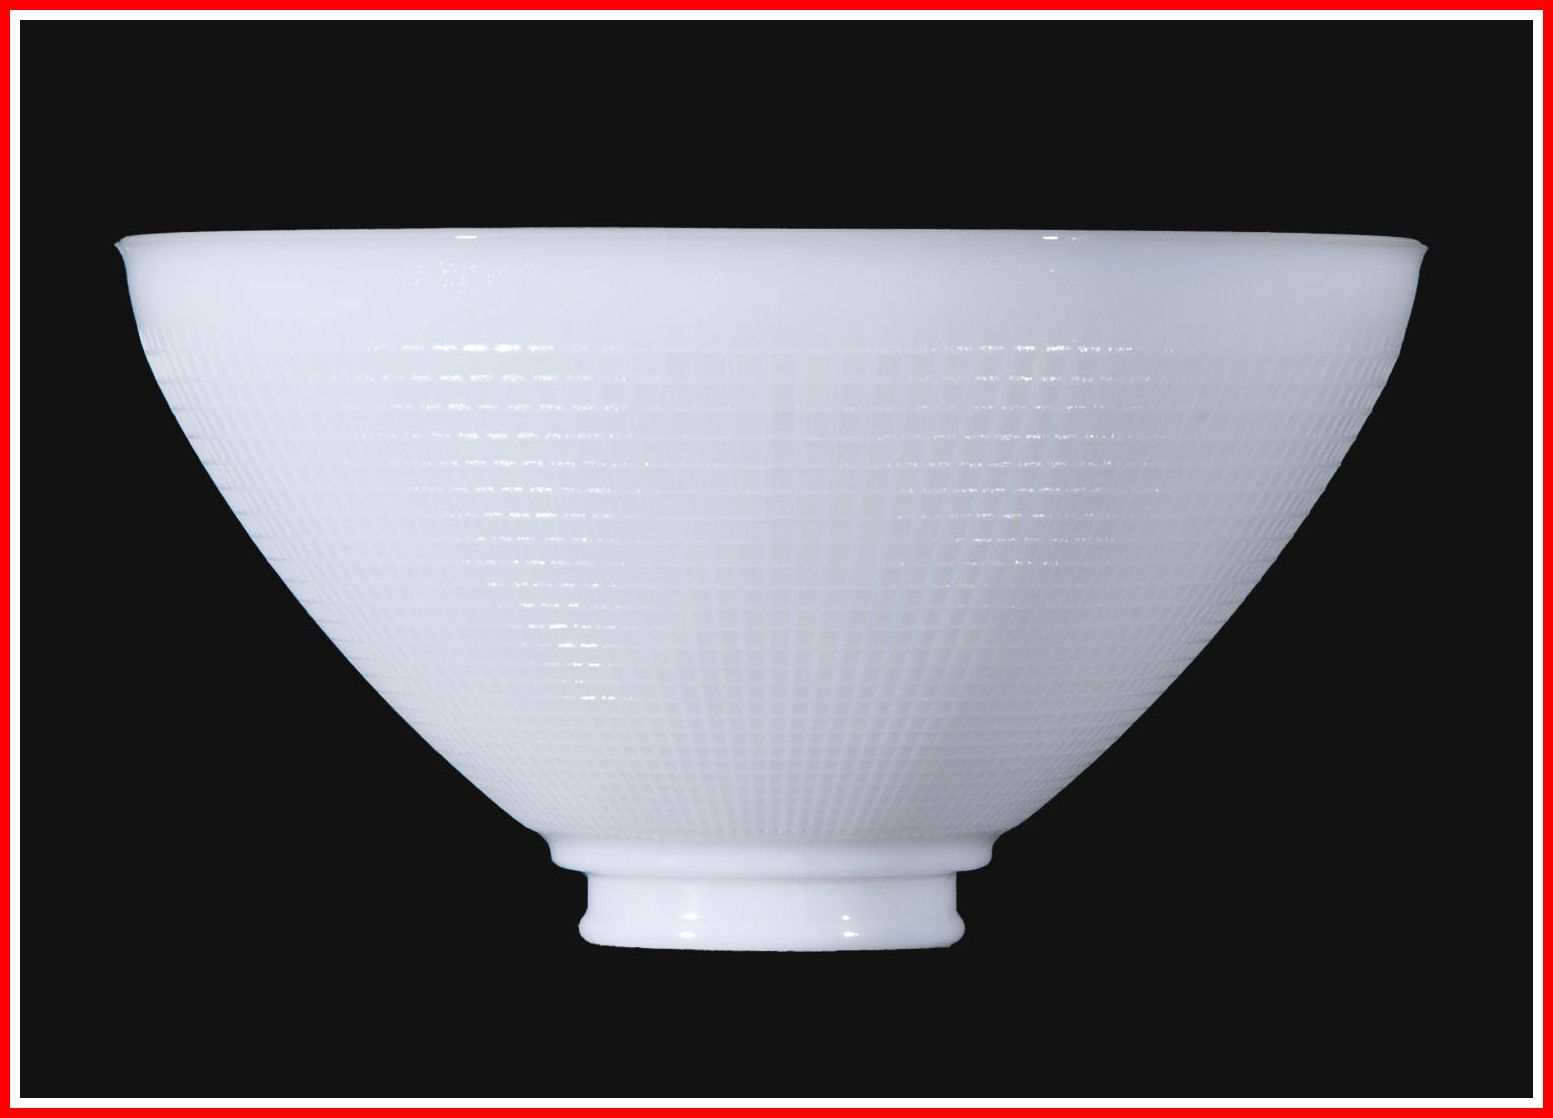 111 Reference Of Floor Lamp Glass Shades Replacement In 2020 Replacement Glass Lamp Shades Glass Lamp Shade Floor Lamp